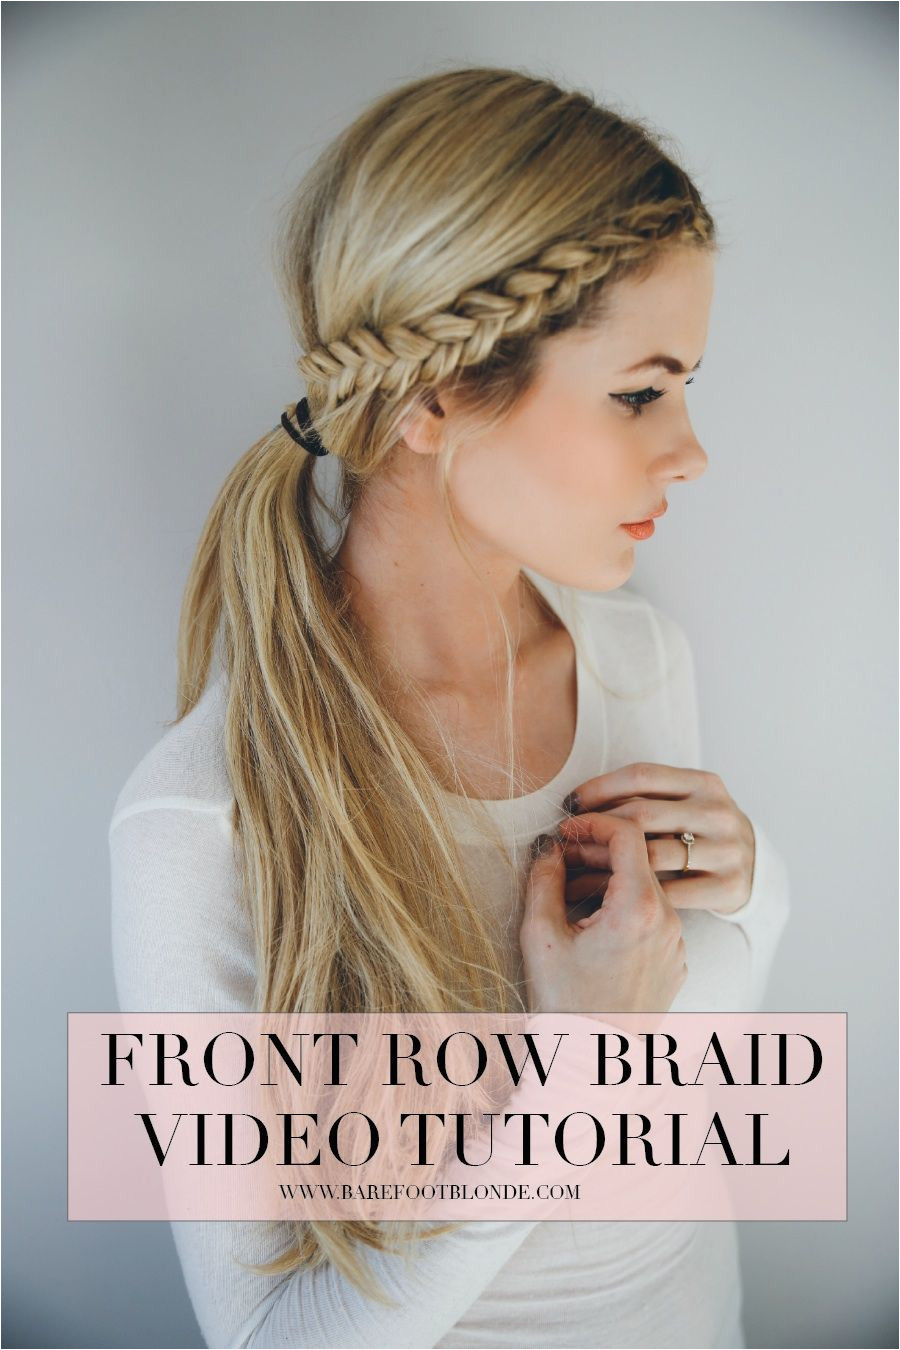 Front Row Braid Video Tutorial